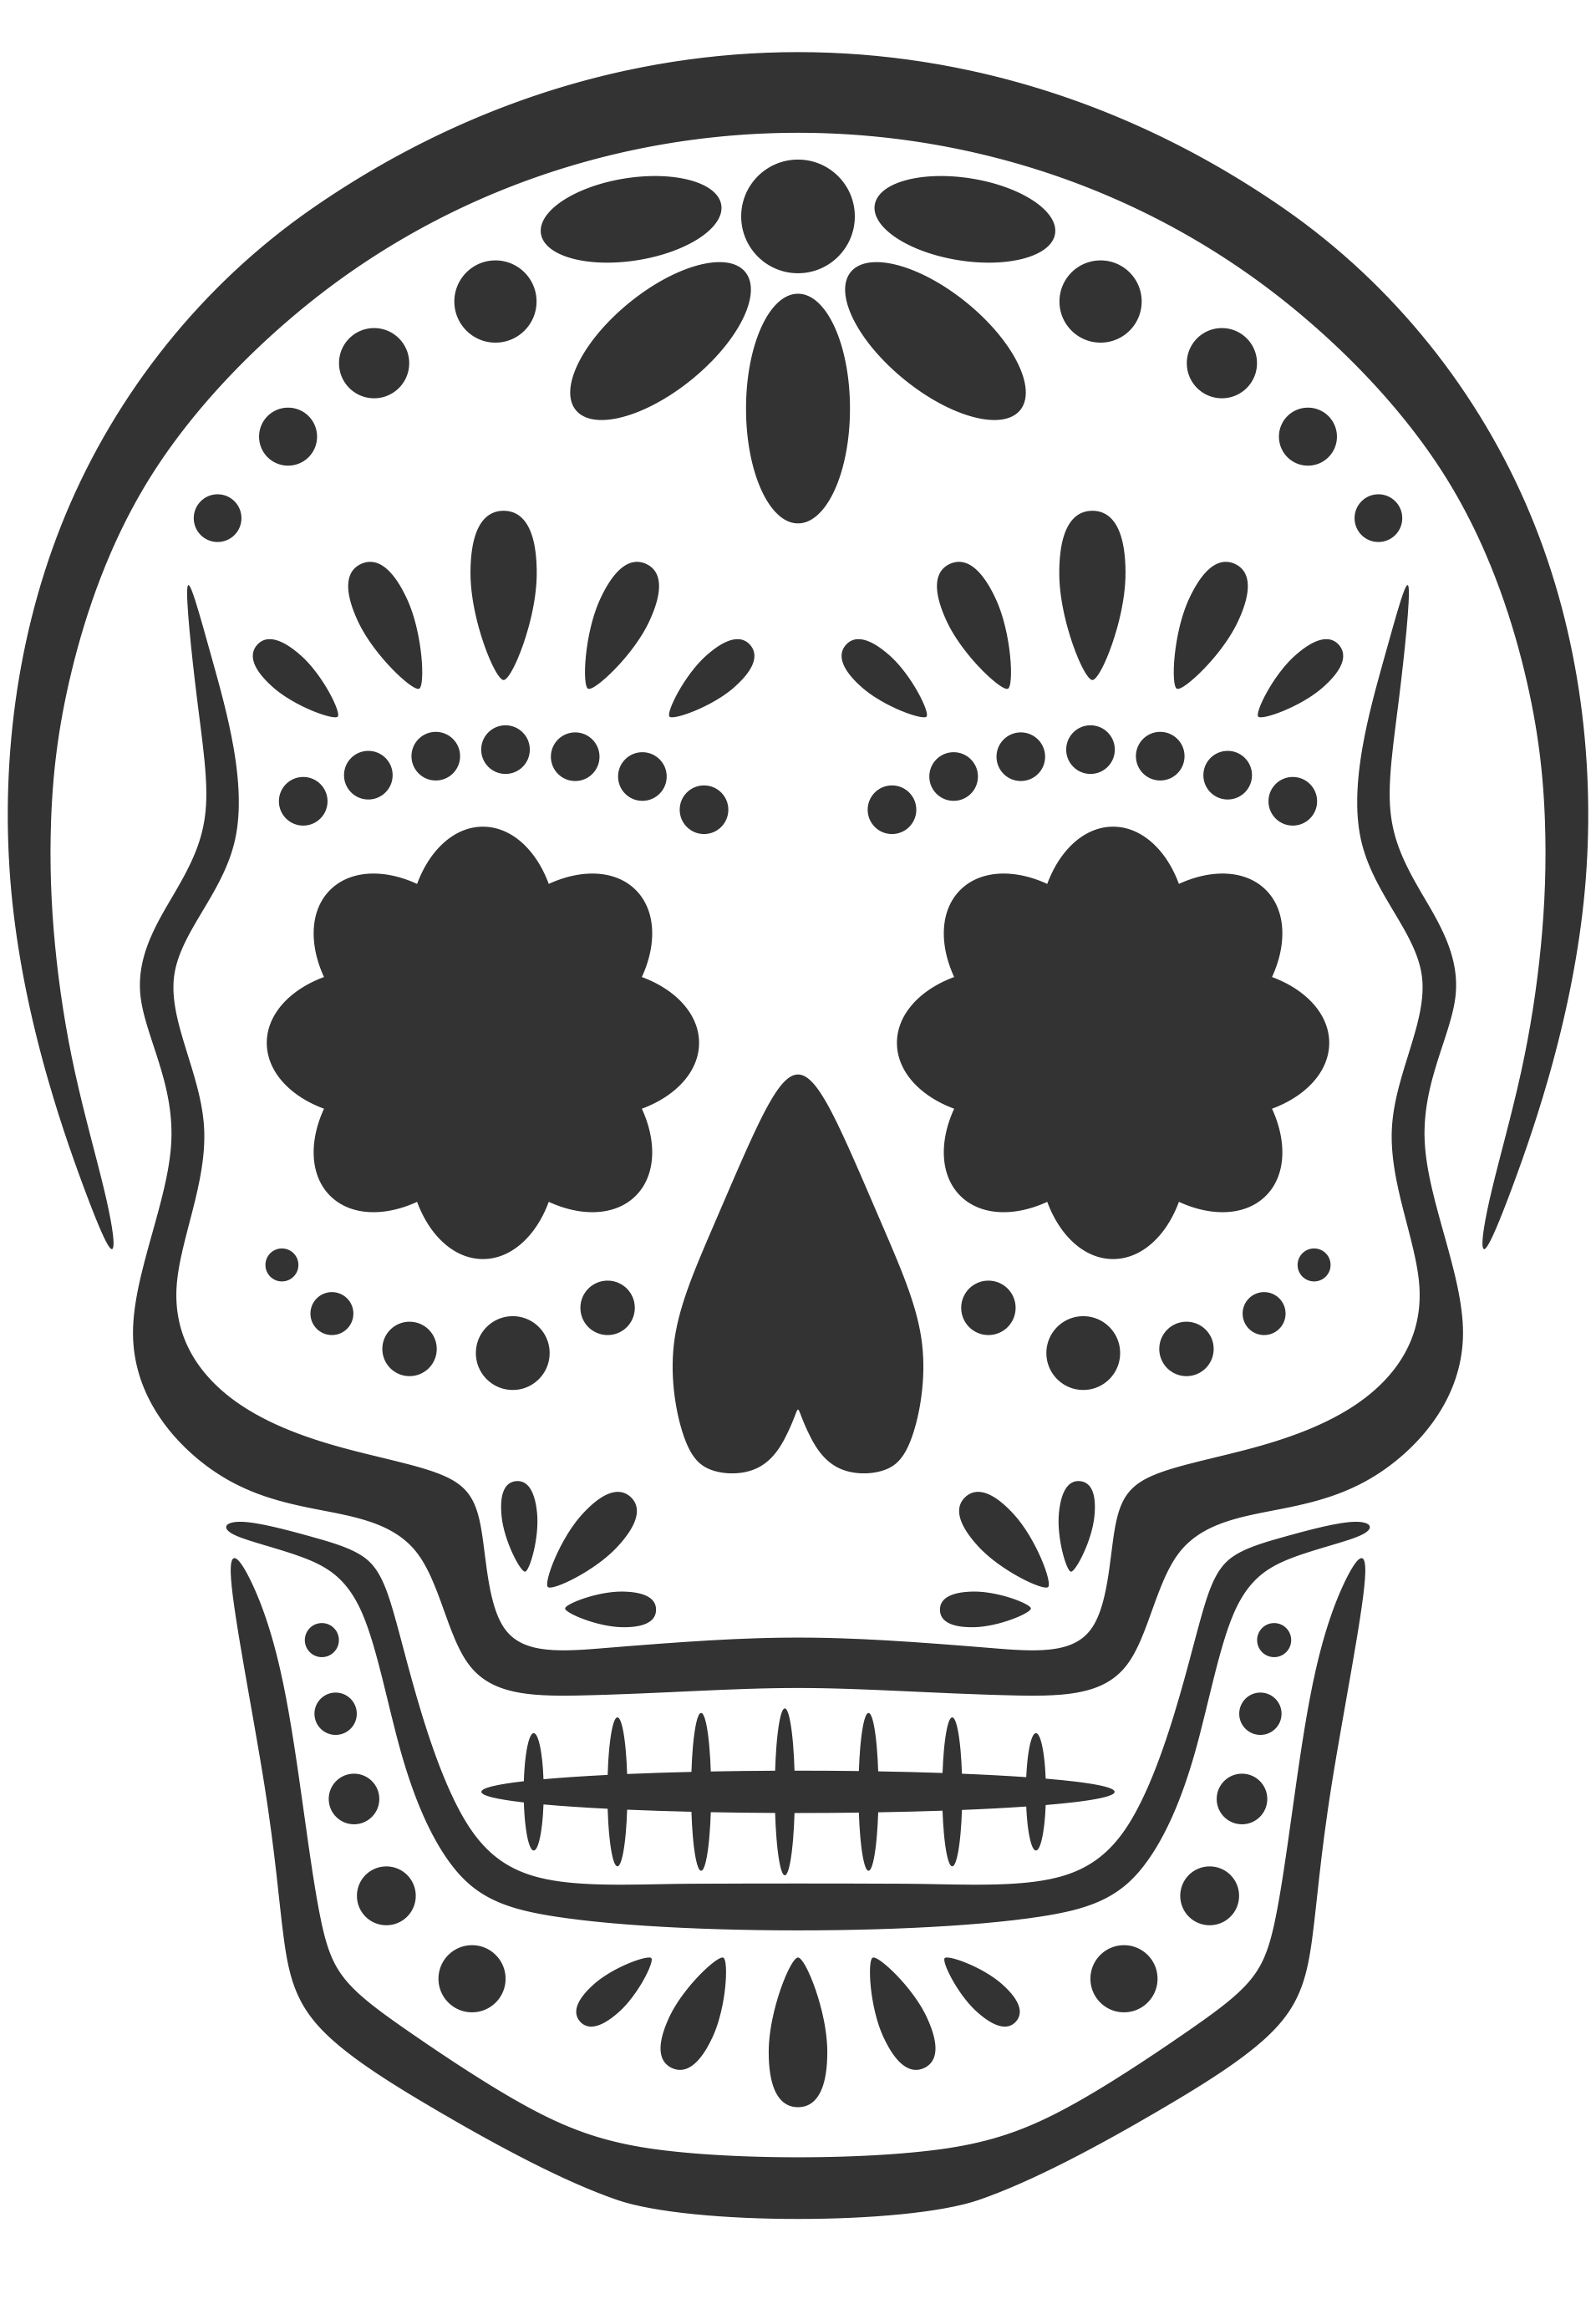 day of the dead template day of the dead pumpkin carving stencil lorenzo sculptures template of dead day the